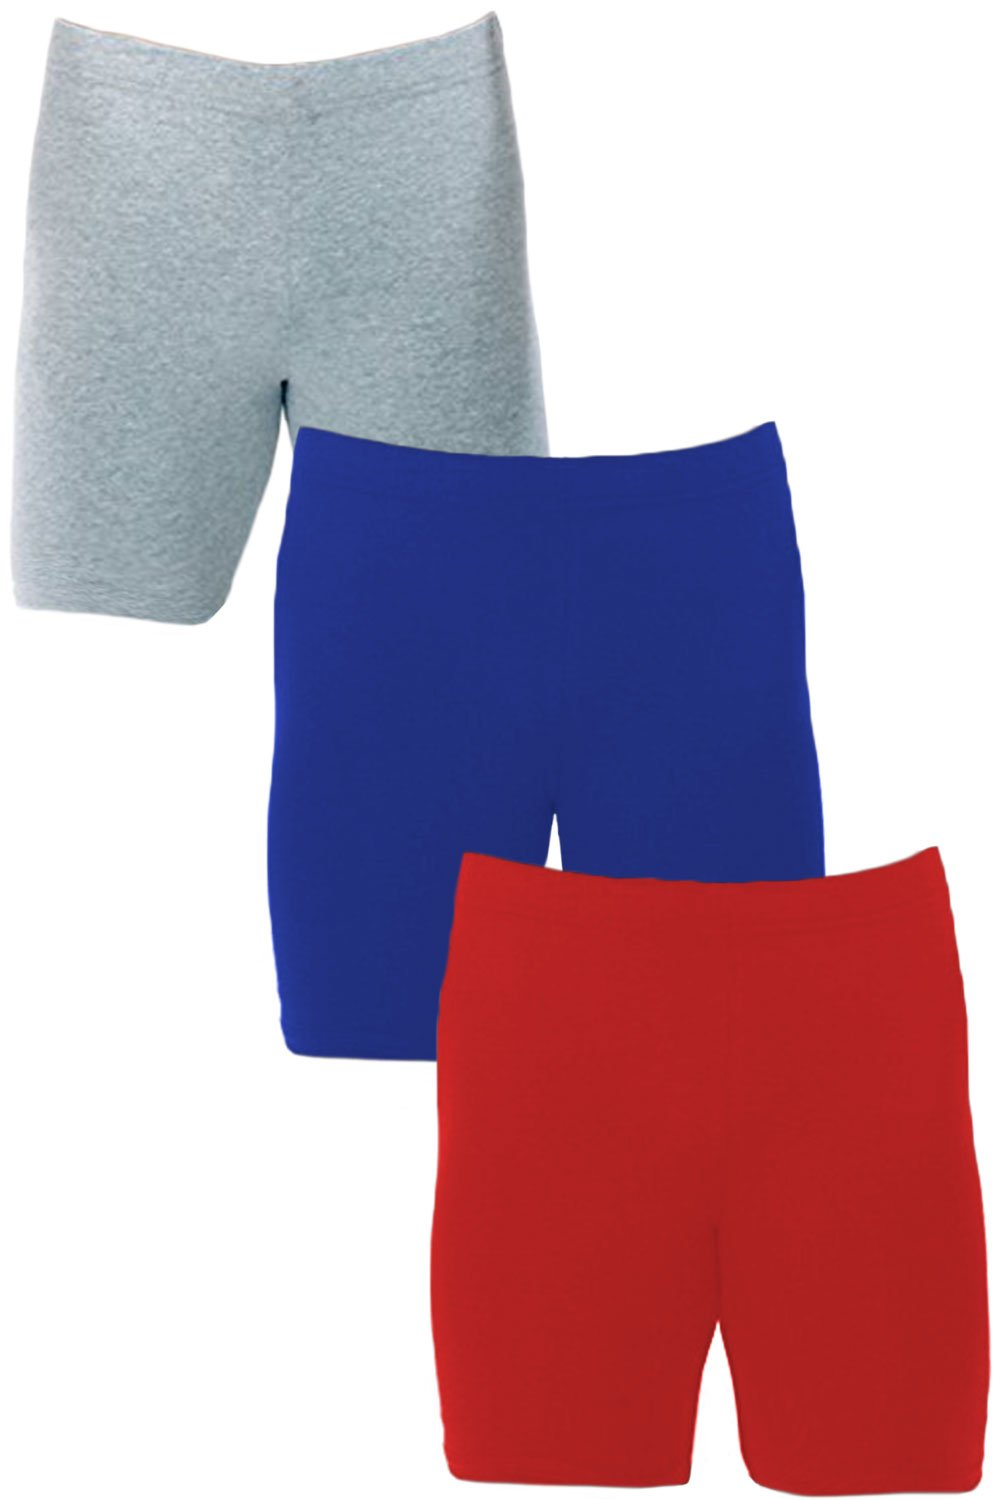 Men's Extreme Core-Champion True Double Dry Compression Short (Small, 3 Pack Grey/Red/Royal)